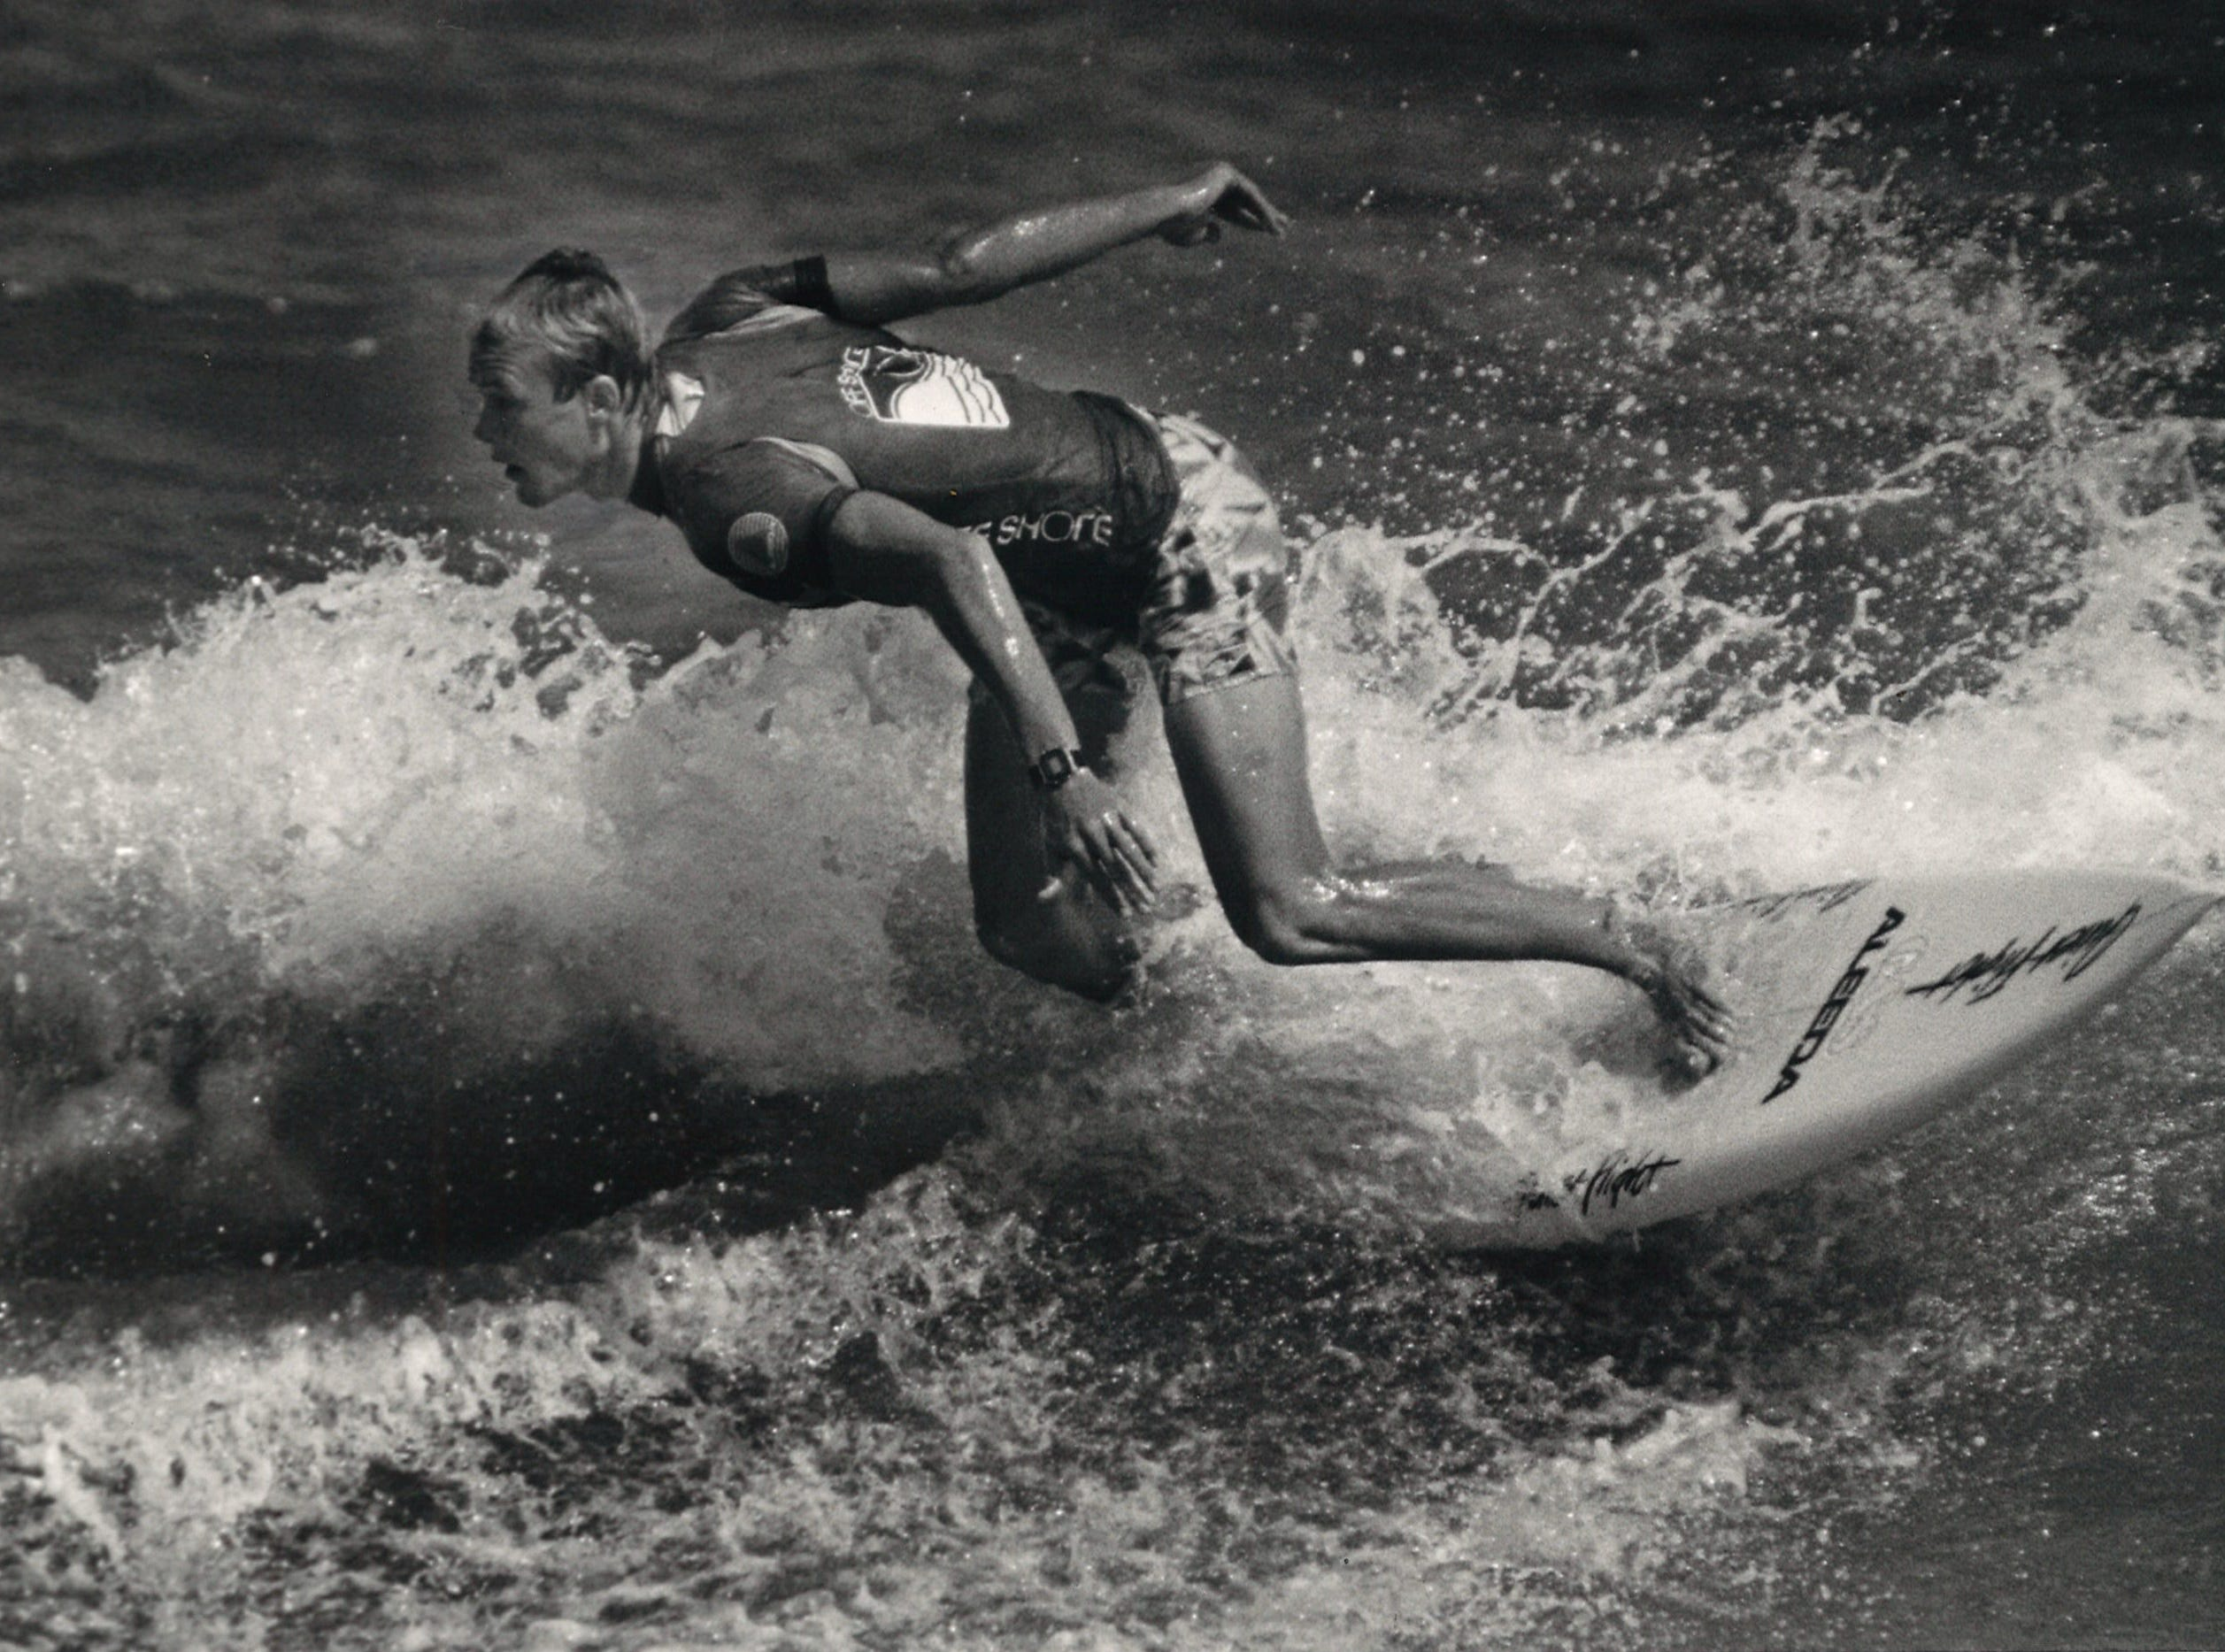 Pro surfer Rich Rudolph of Cocoa Beach, Florida cuts back on a wave during the final heat of the 4th annual Off Shore/Raisins Texas Pro Am Surfing Classic in April 1987. Rudolph defeated Matt Kechele, also of Cocoa Beach.